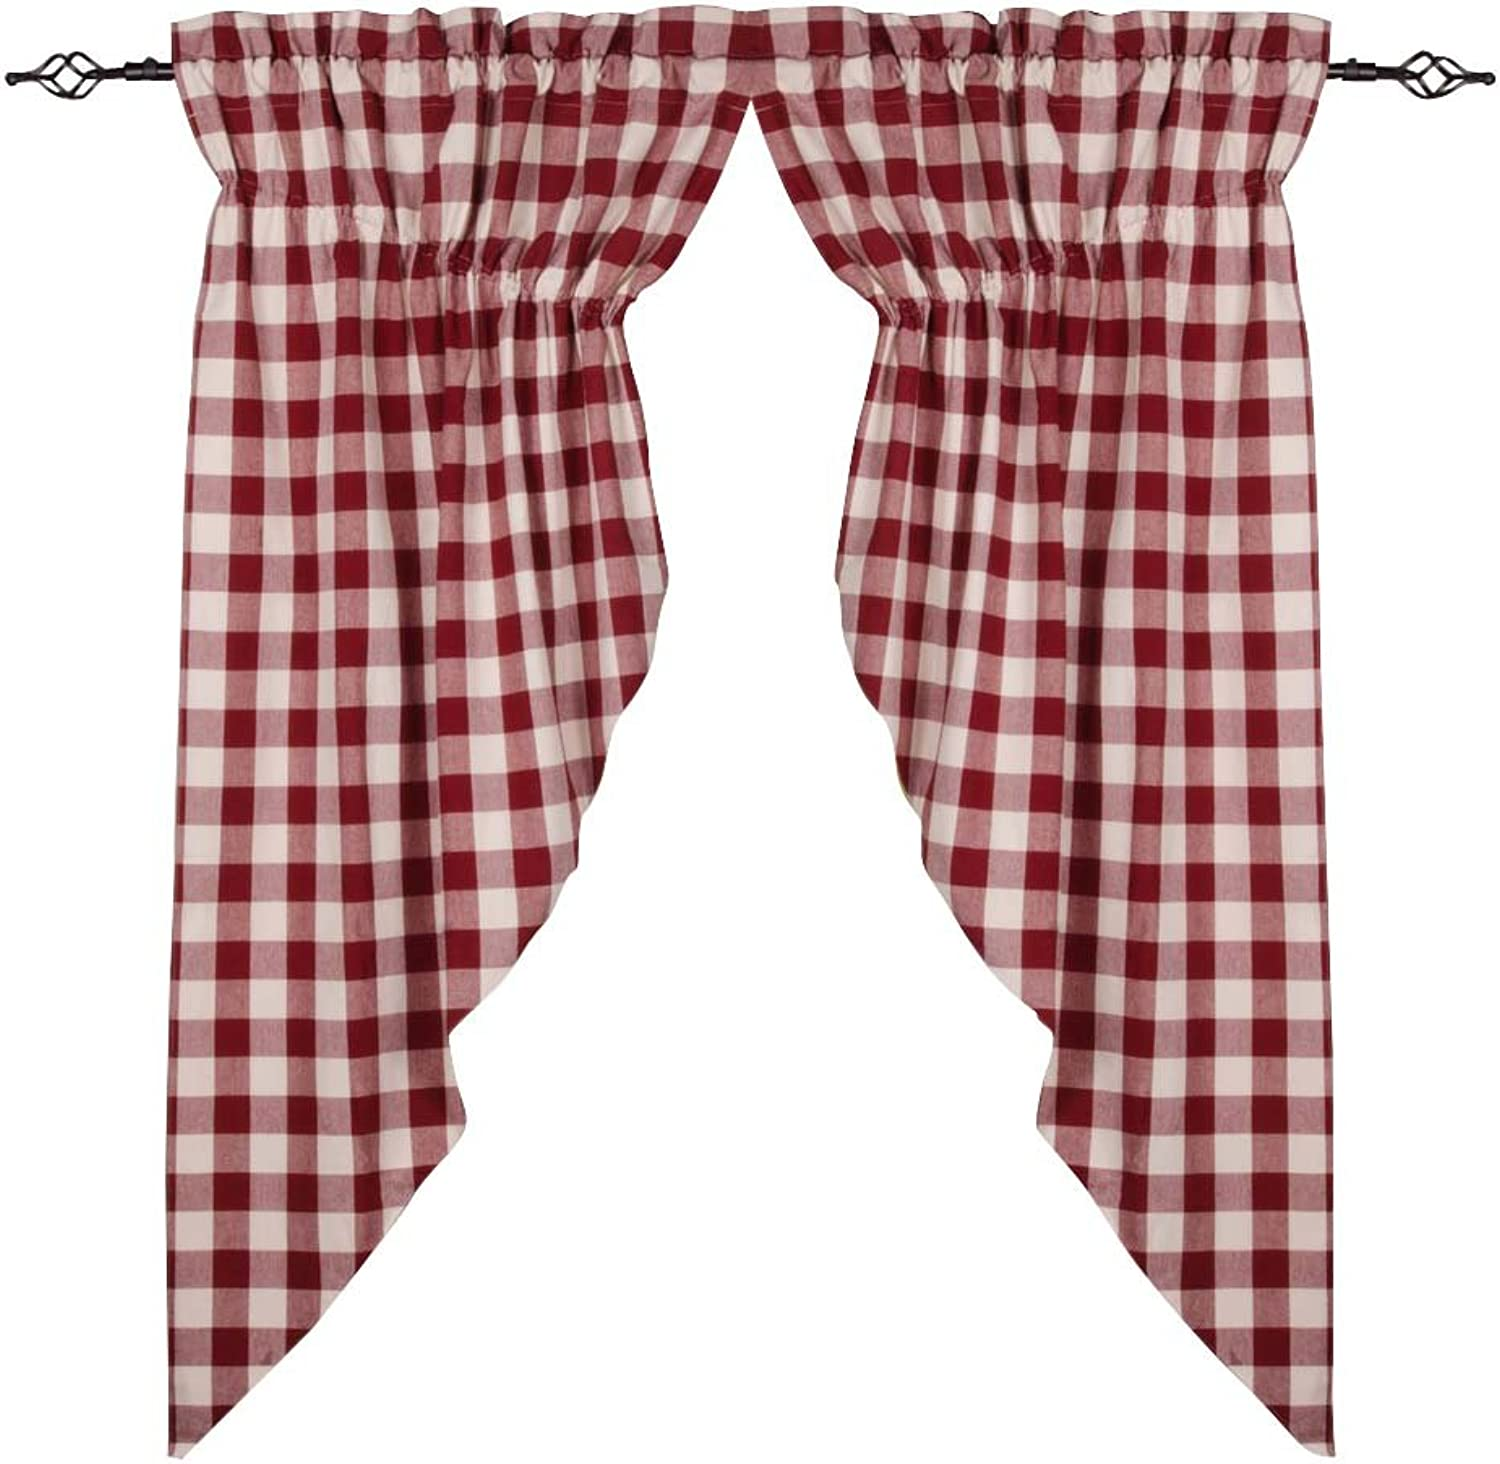 Home Collections by Raghu 72x63 (2 pcs) Buffalo Check Barn Red-Buttermilk Gathered Swag